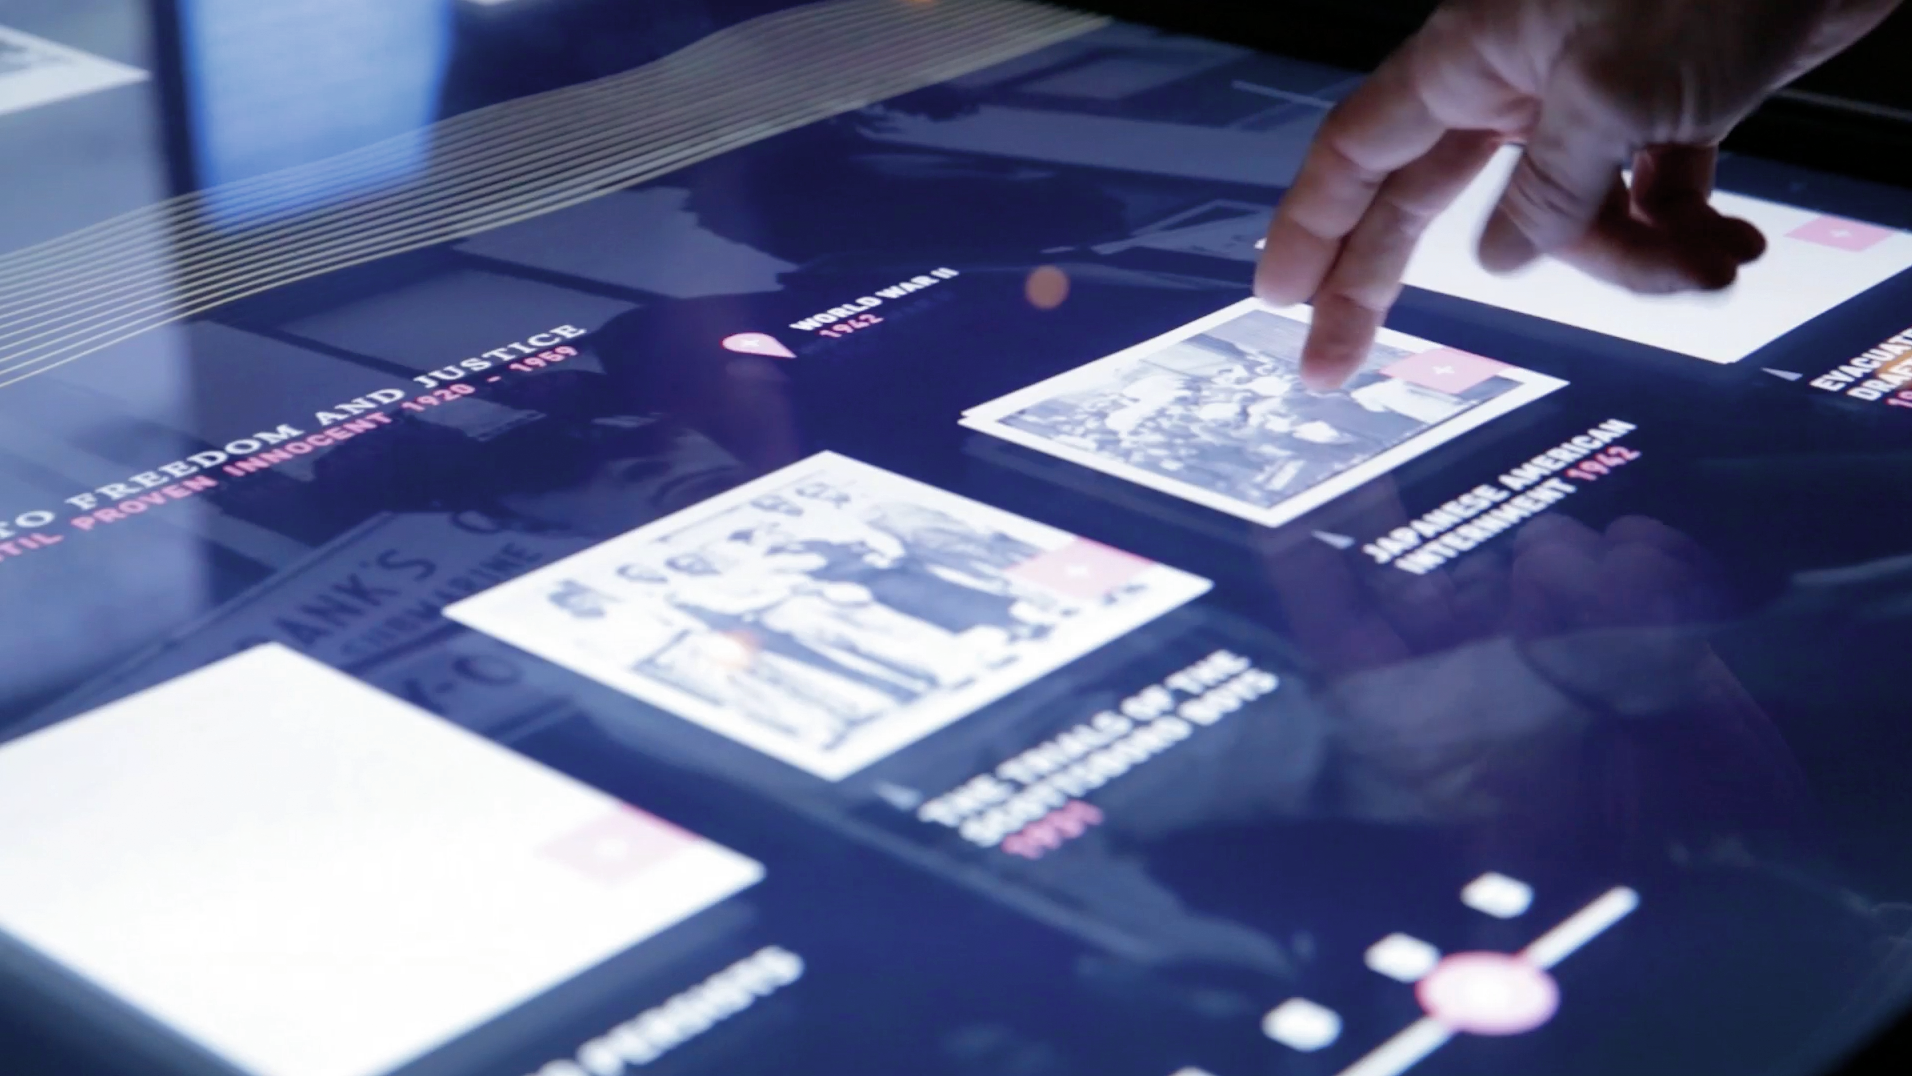 Systems   Interactivity, Presentation & Capture   Explore